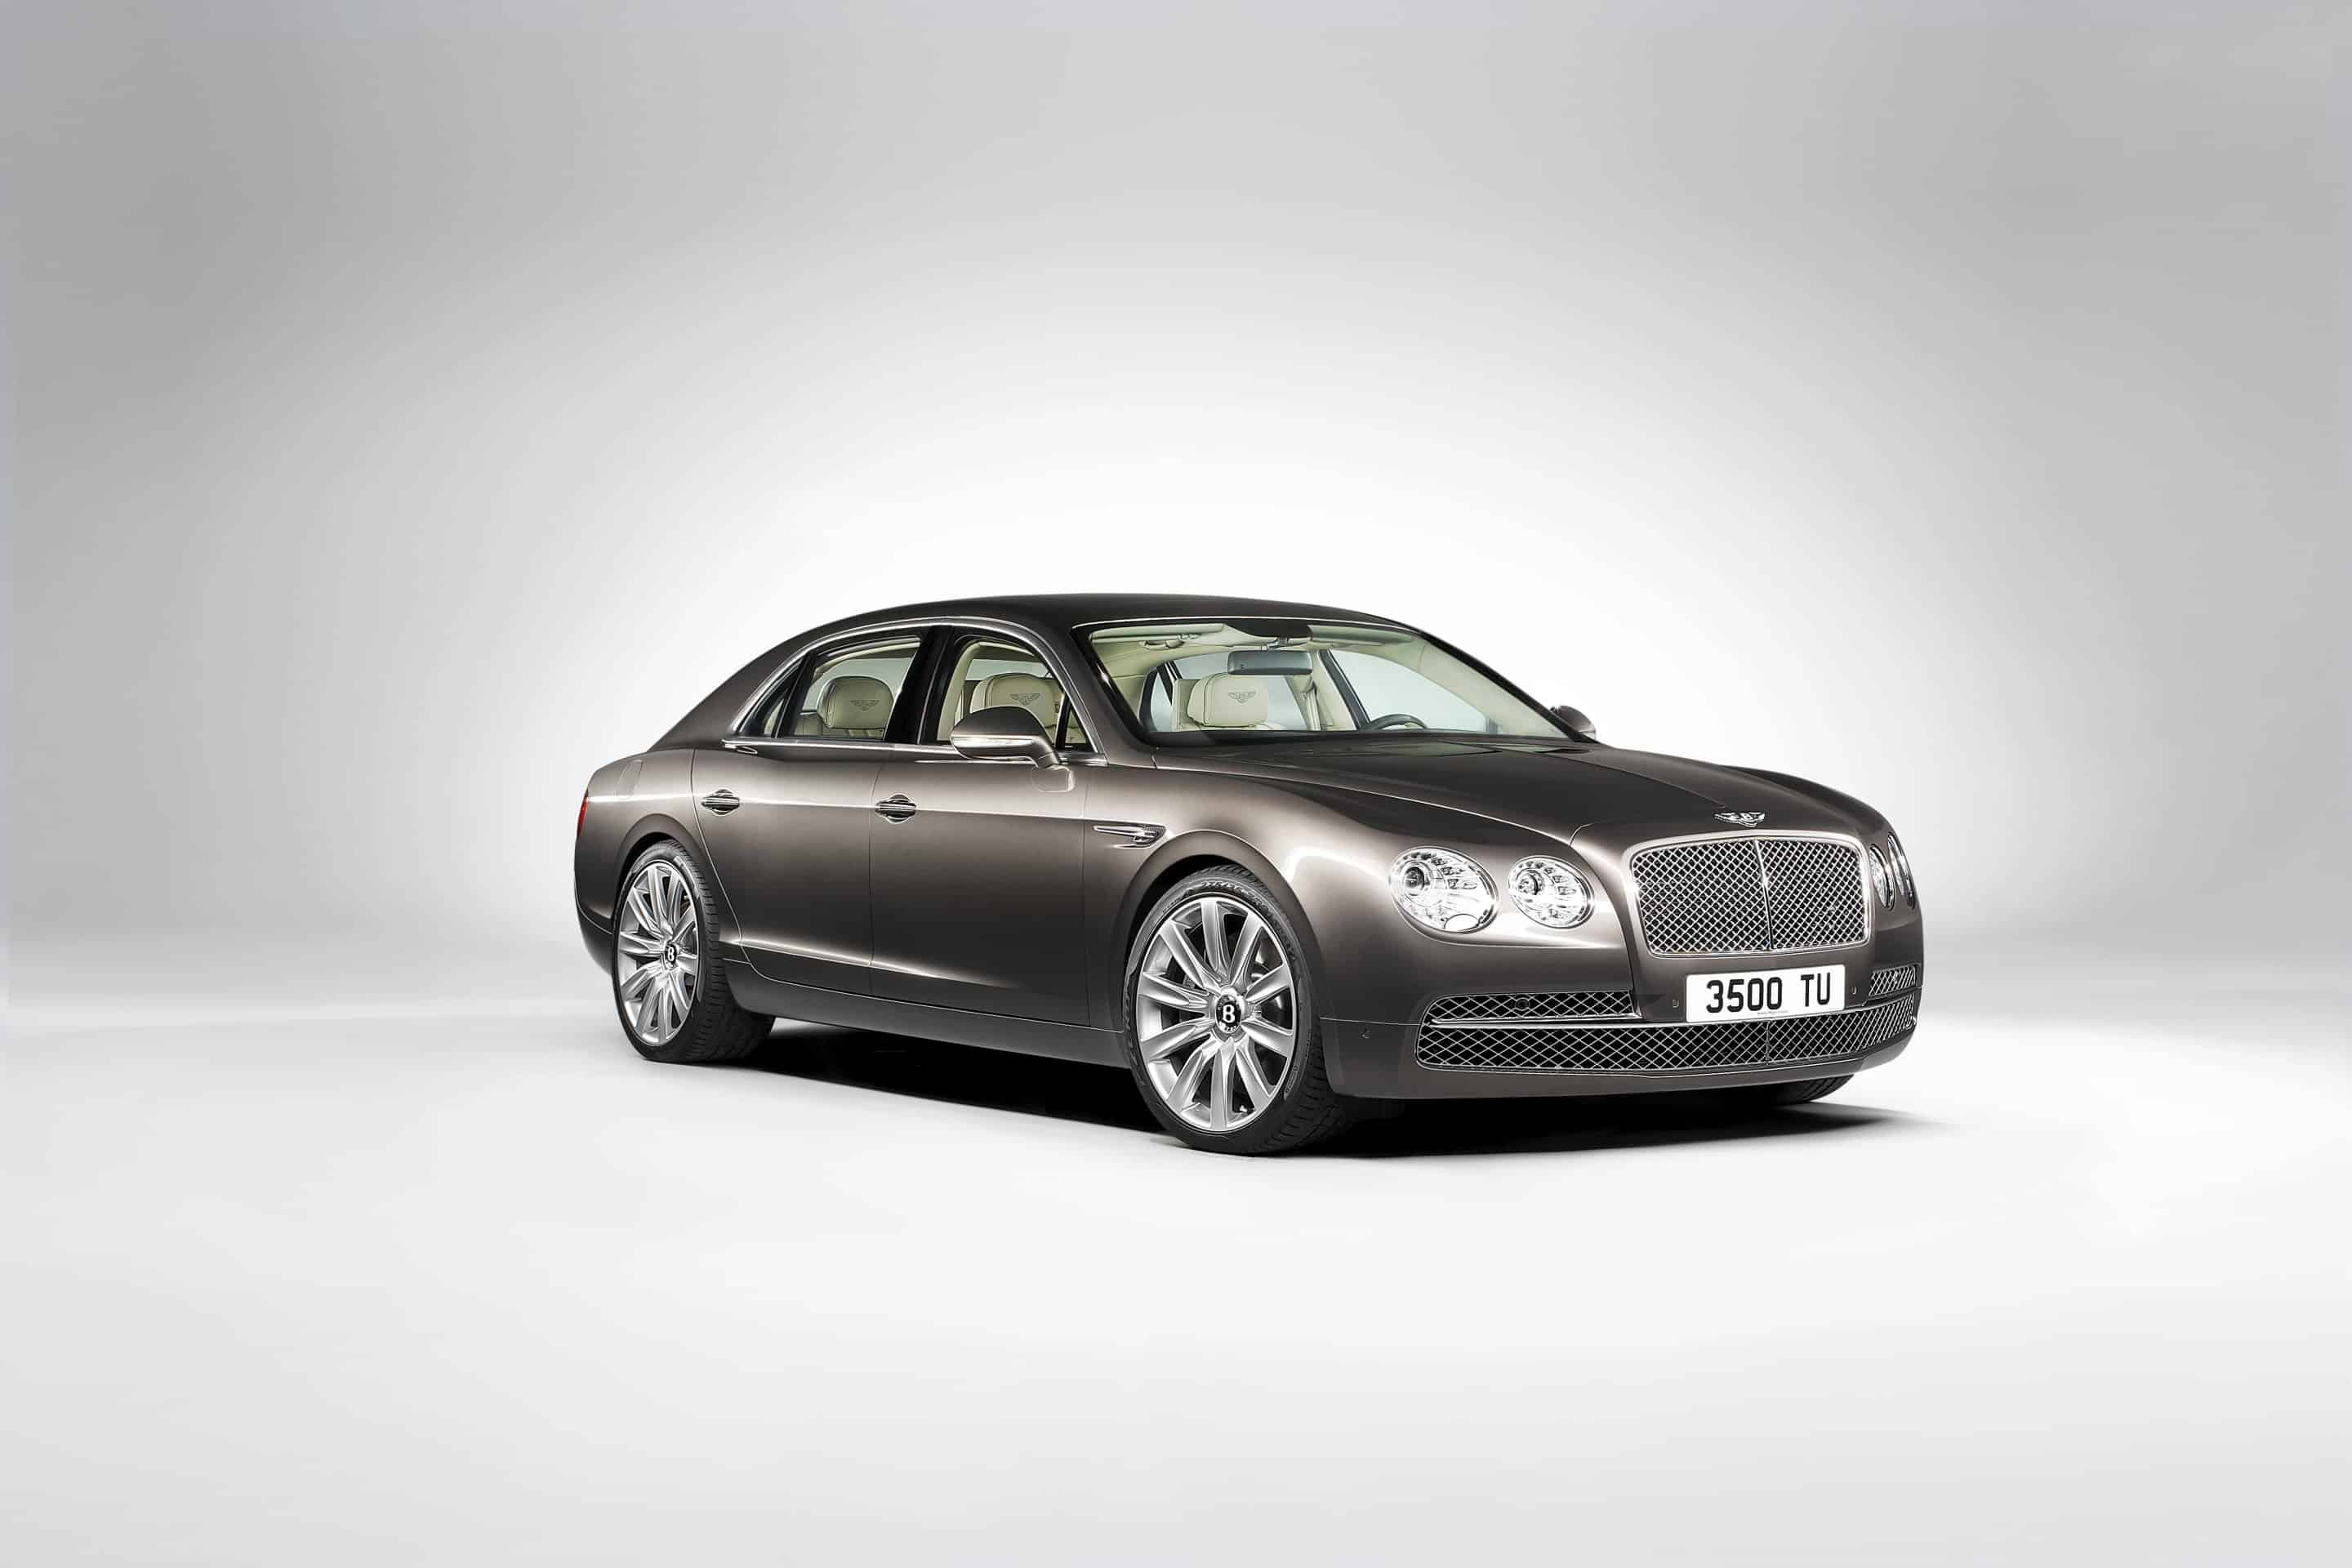 Bentley-Flying-Spur-Rich-Cars-Car-Magazine-VIP-Style-Cars-Dream-Cars-Most-Expensive-Cars-Beverly-Hills-Magazine